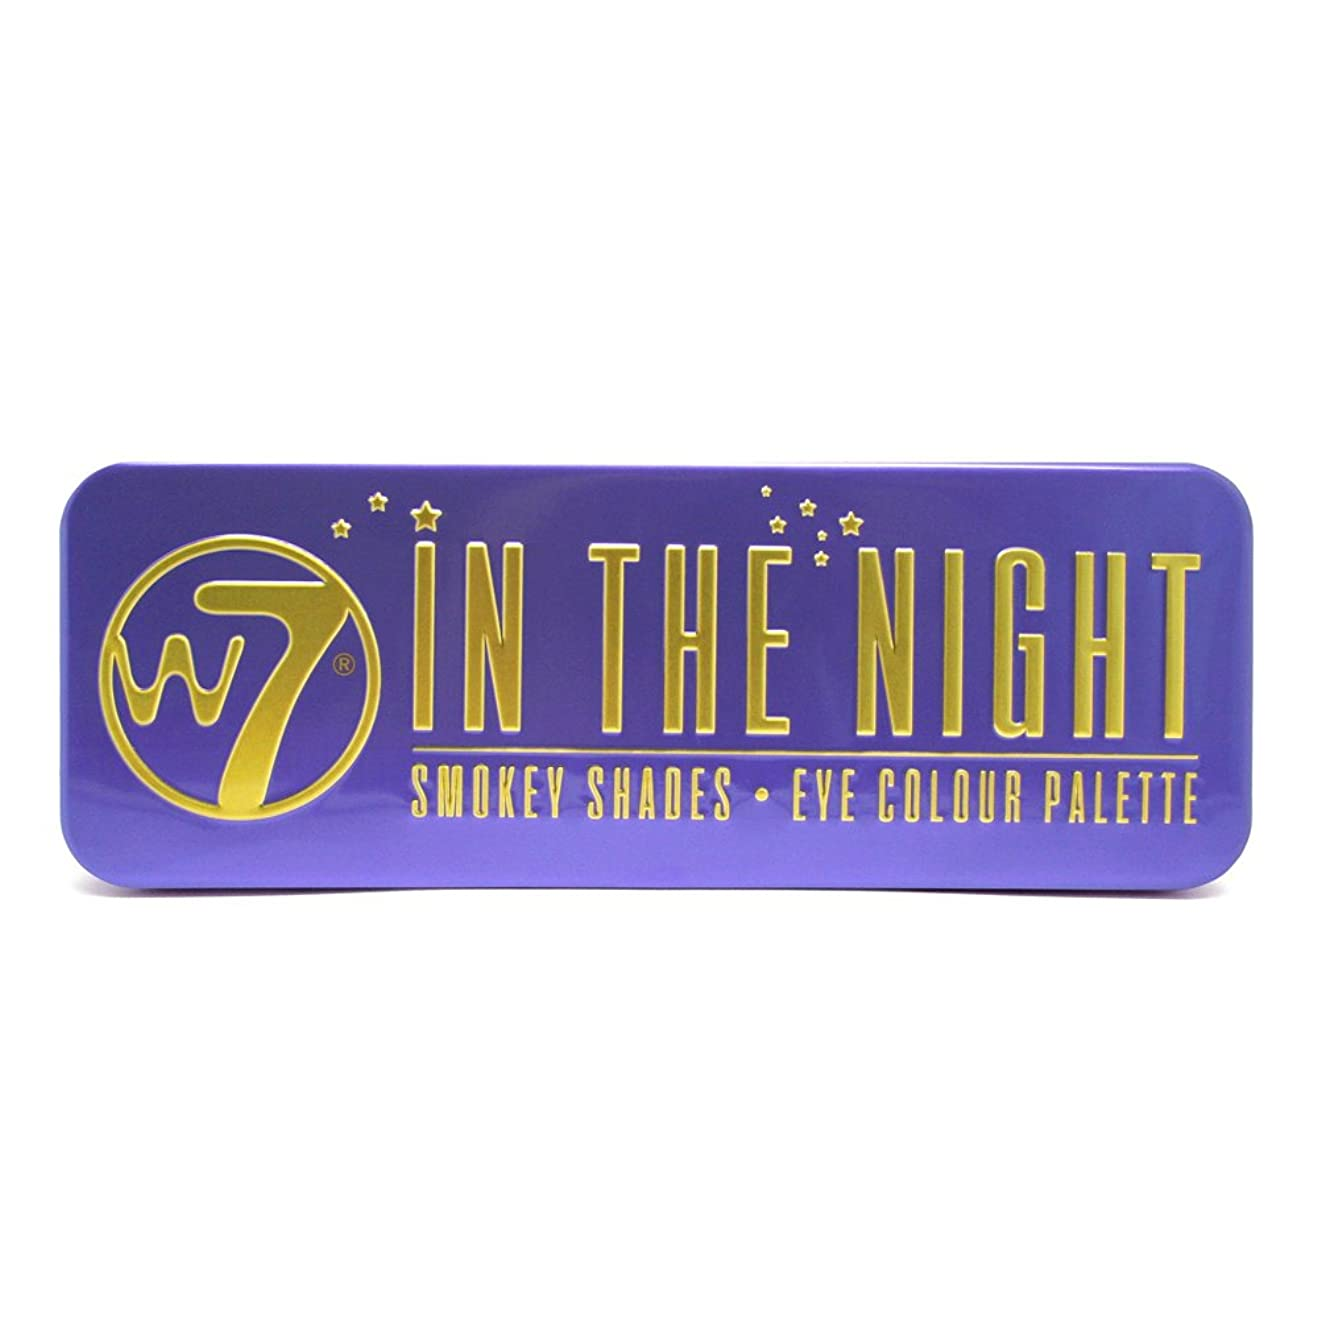 (3 Pack) W7 In The Night Smokey Shades Eye Colour Palette (並行輸入品)